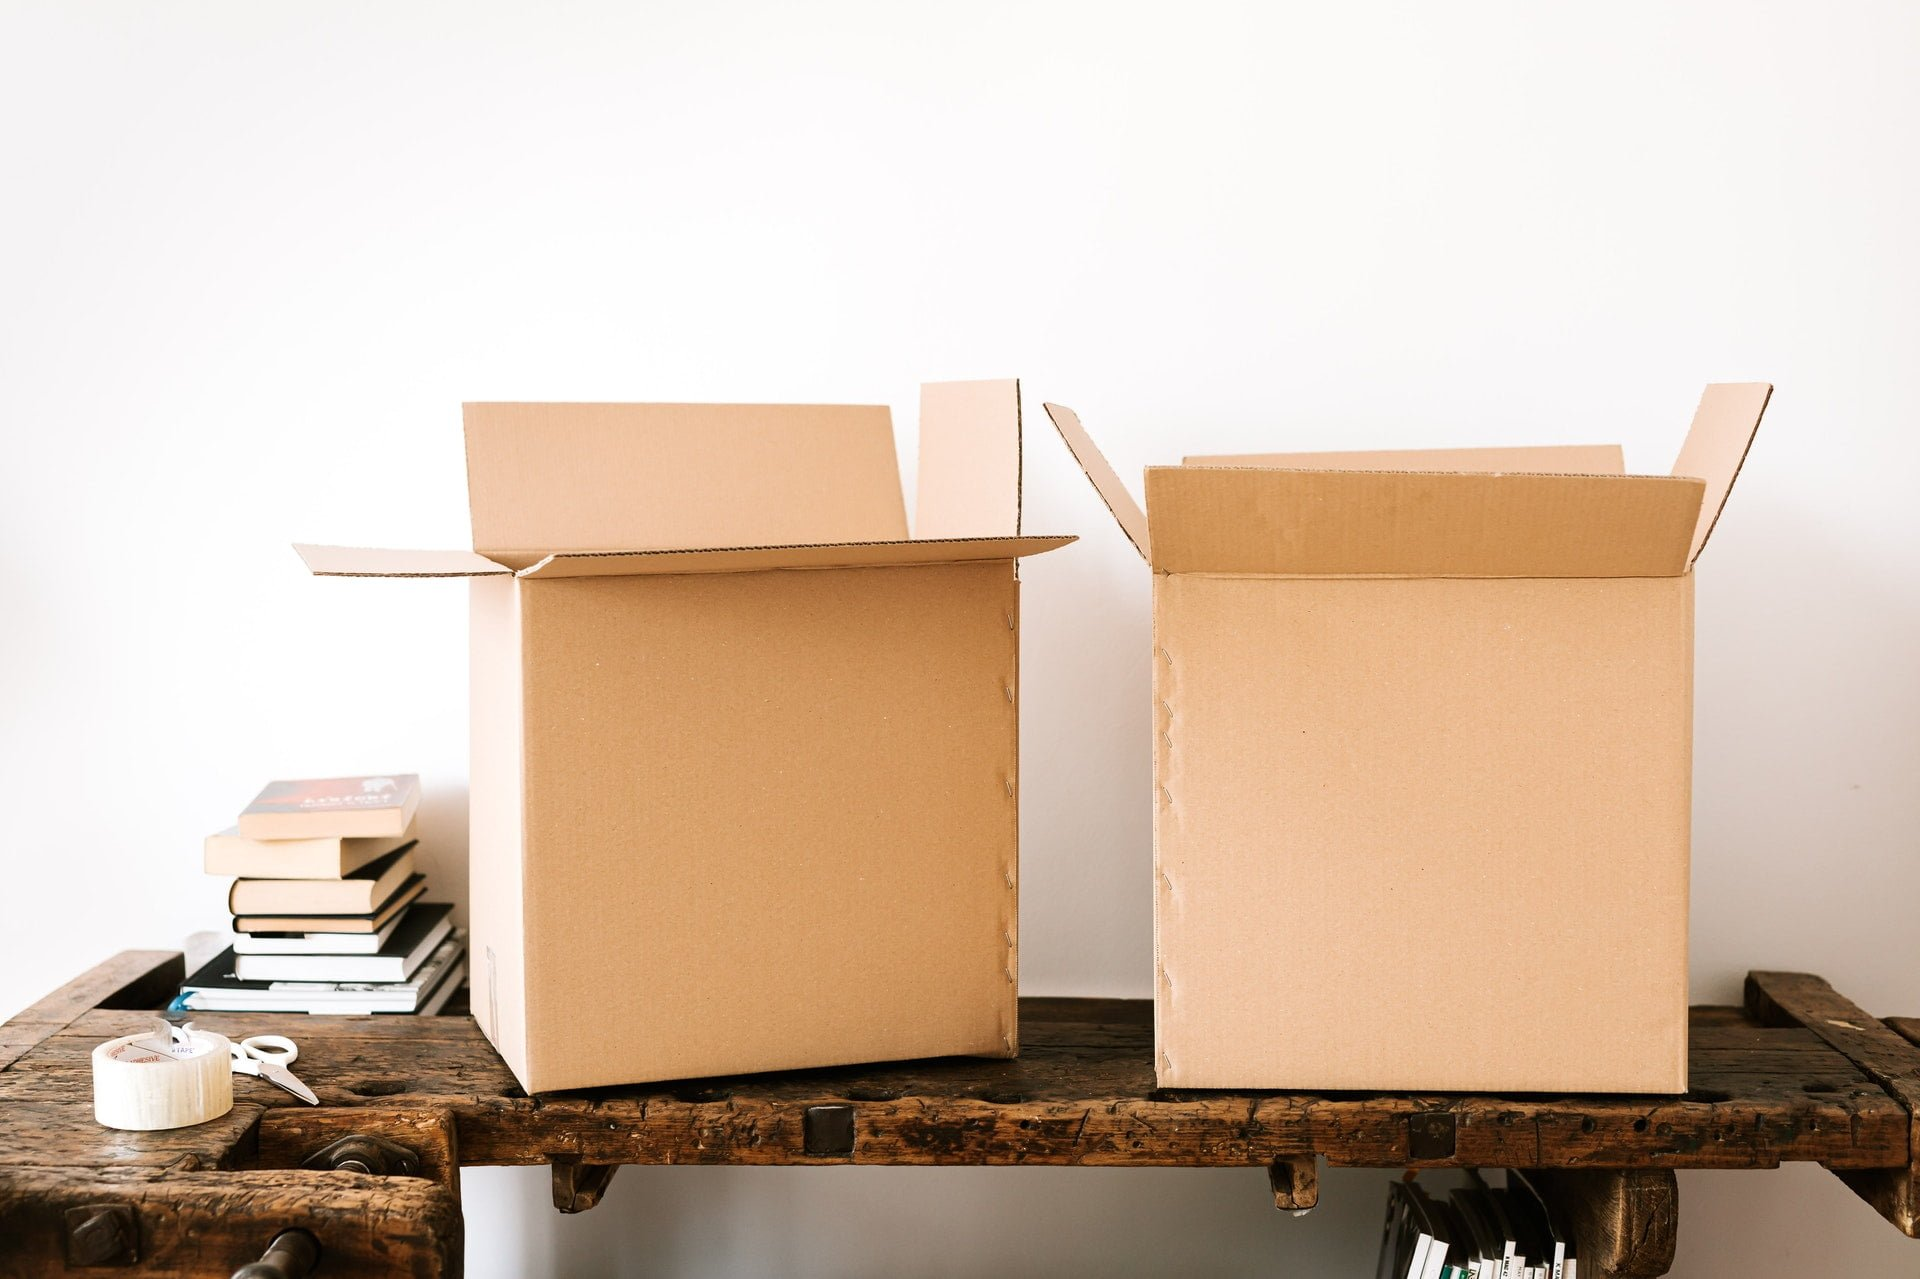 Selling and moving home during the COVID-19 crisis